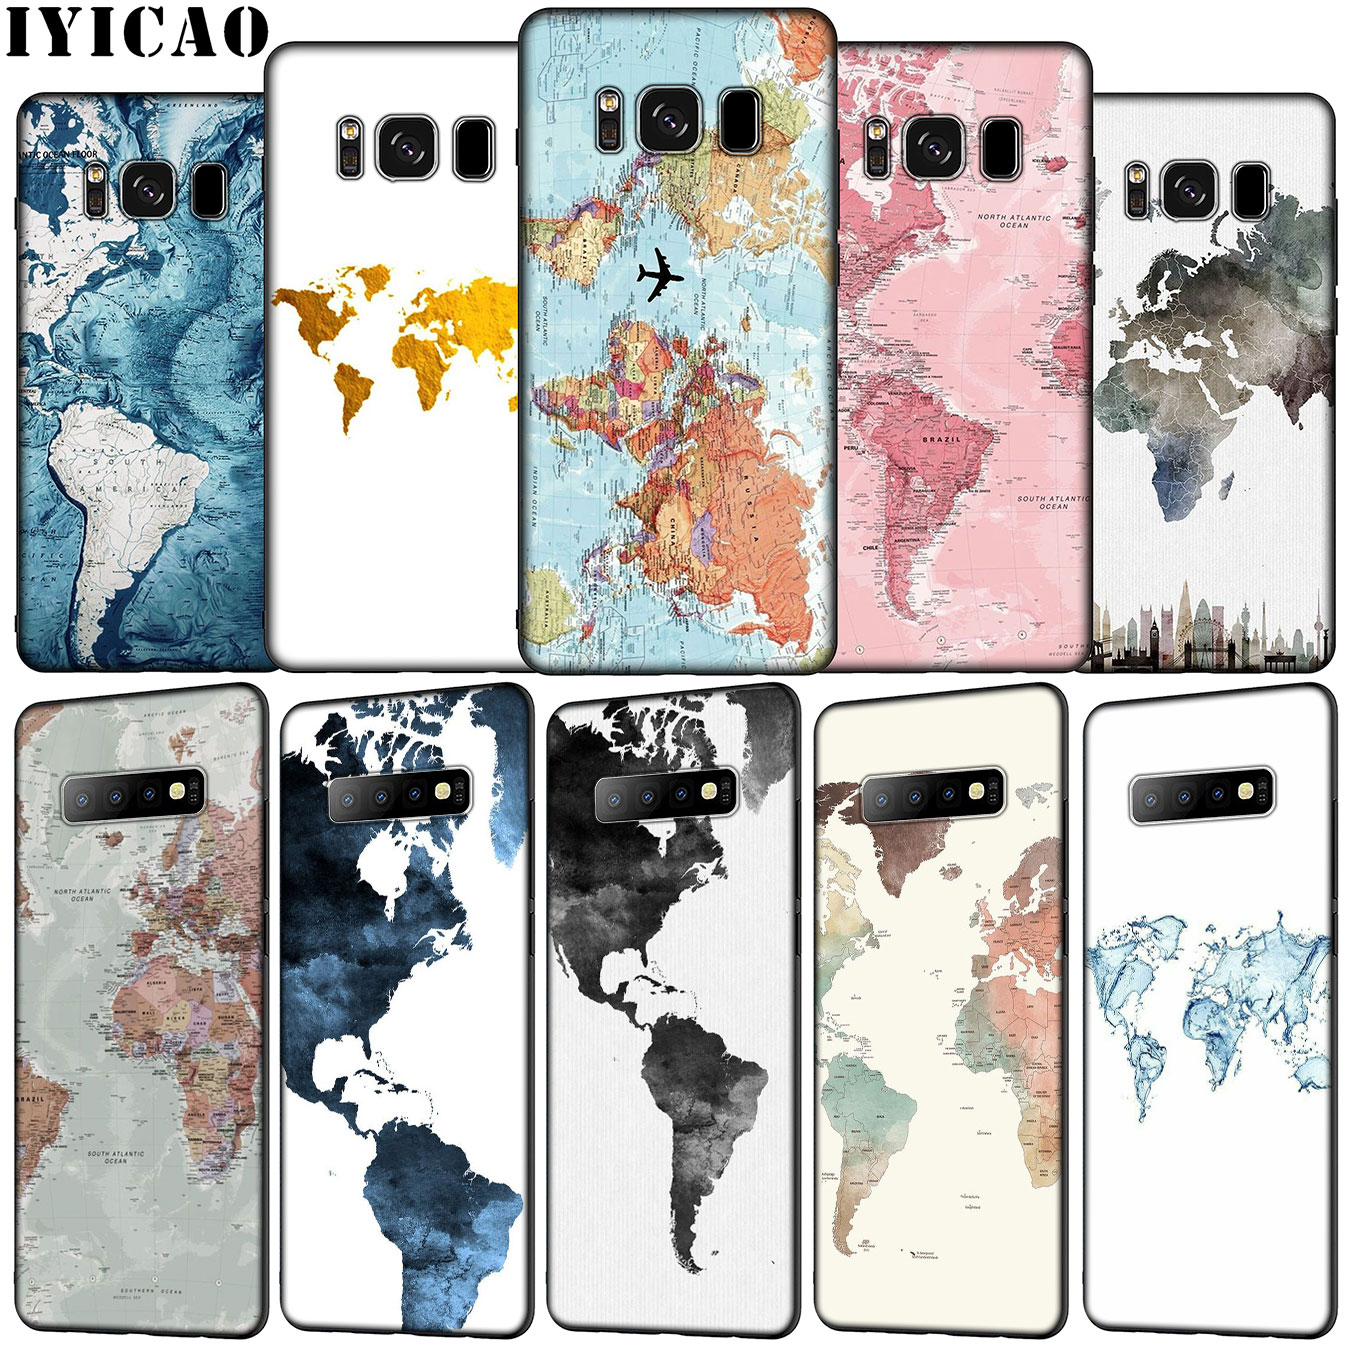 IYICAO World Map Travel Plans Soft <font><b>Silicone</b></font> Phone <font><b>Case</b></font> for <font><b>Samsung</b></font> Galaxy S20 Ultra S10e S9 S8 Plus S6 <font><b>S7</b></font> <font><b>Edge</b></font> S10 Lite Cover image